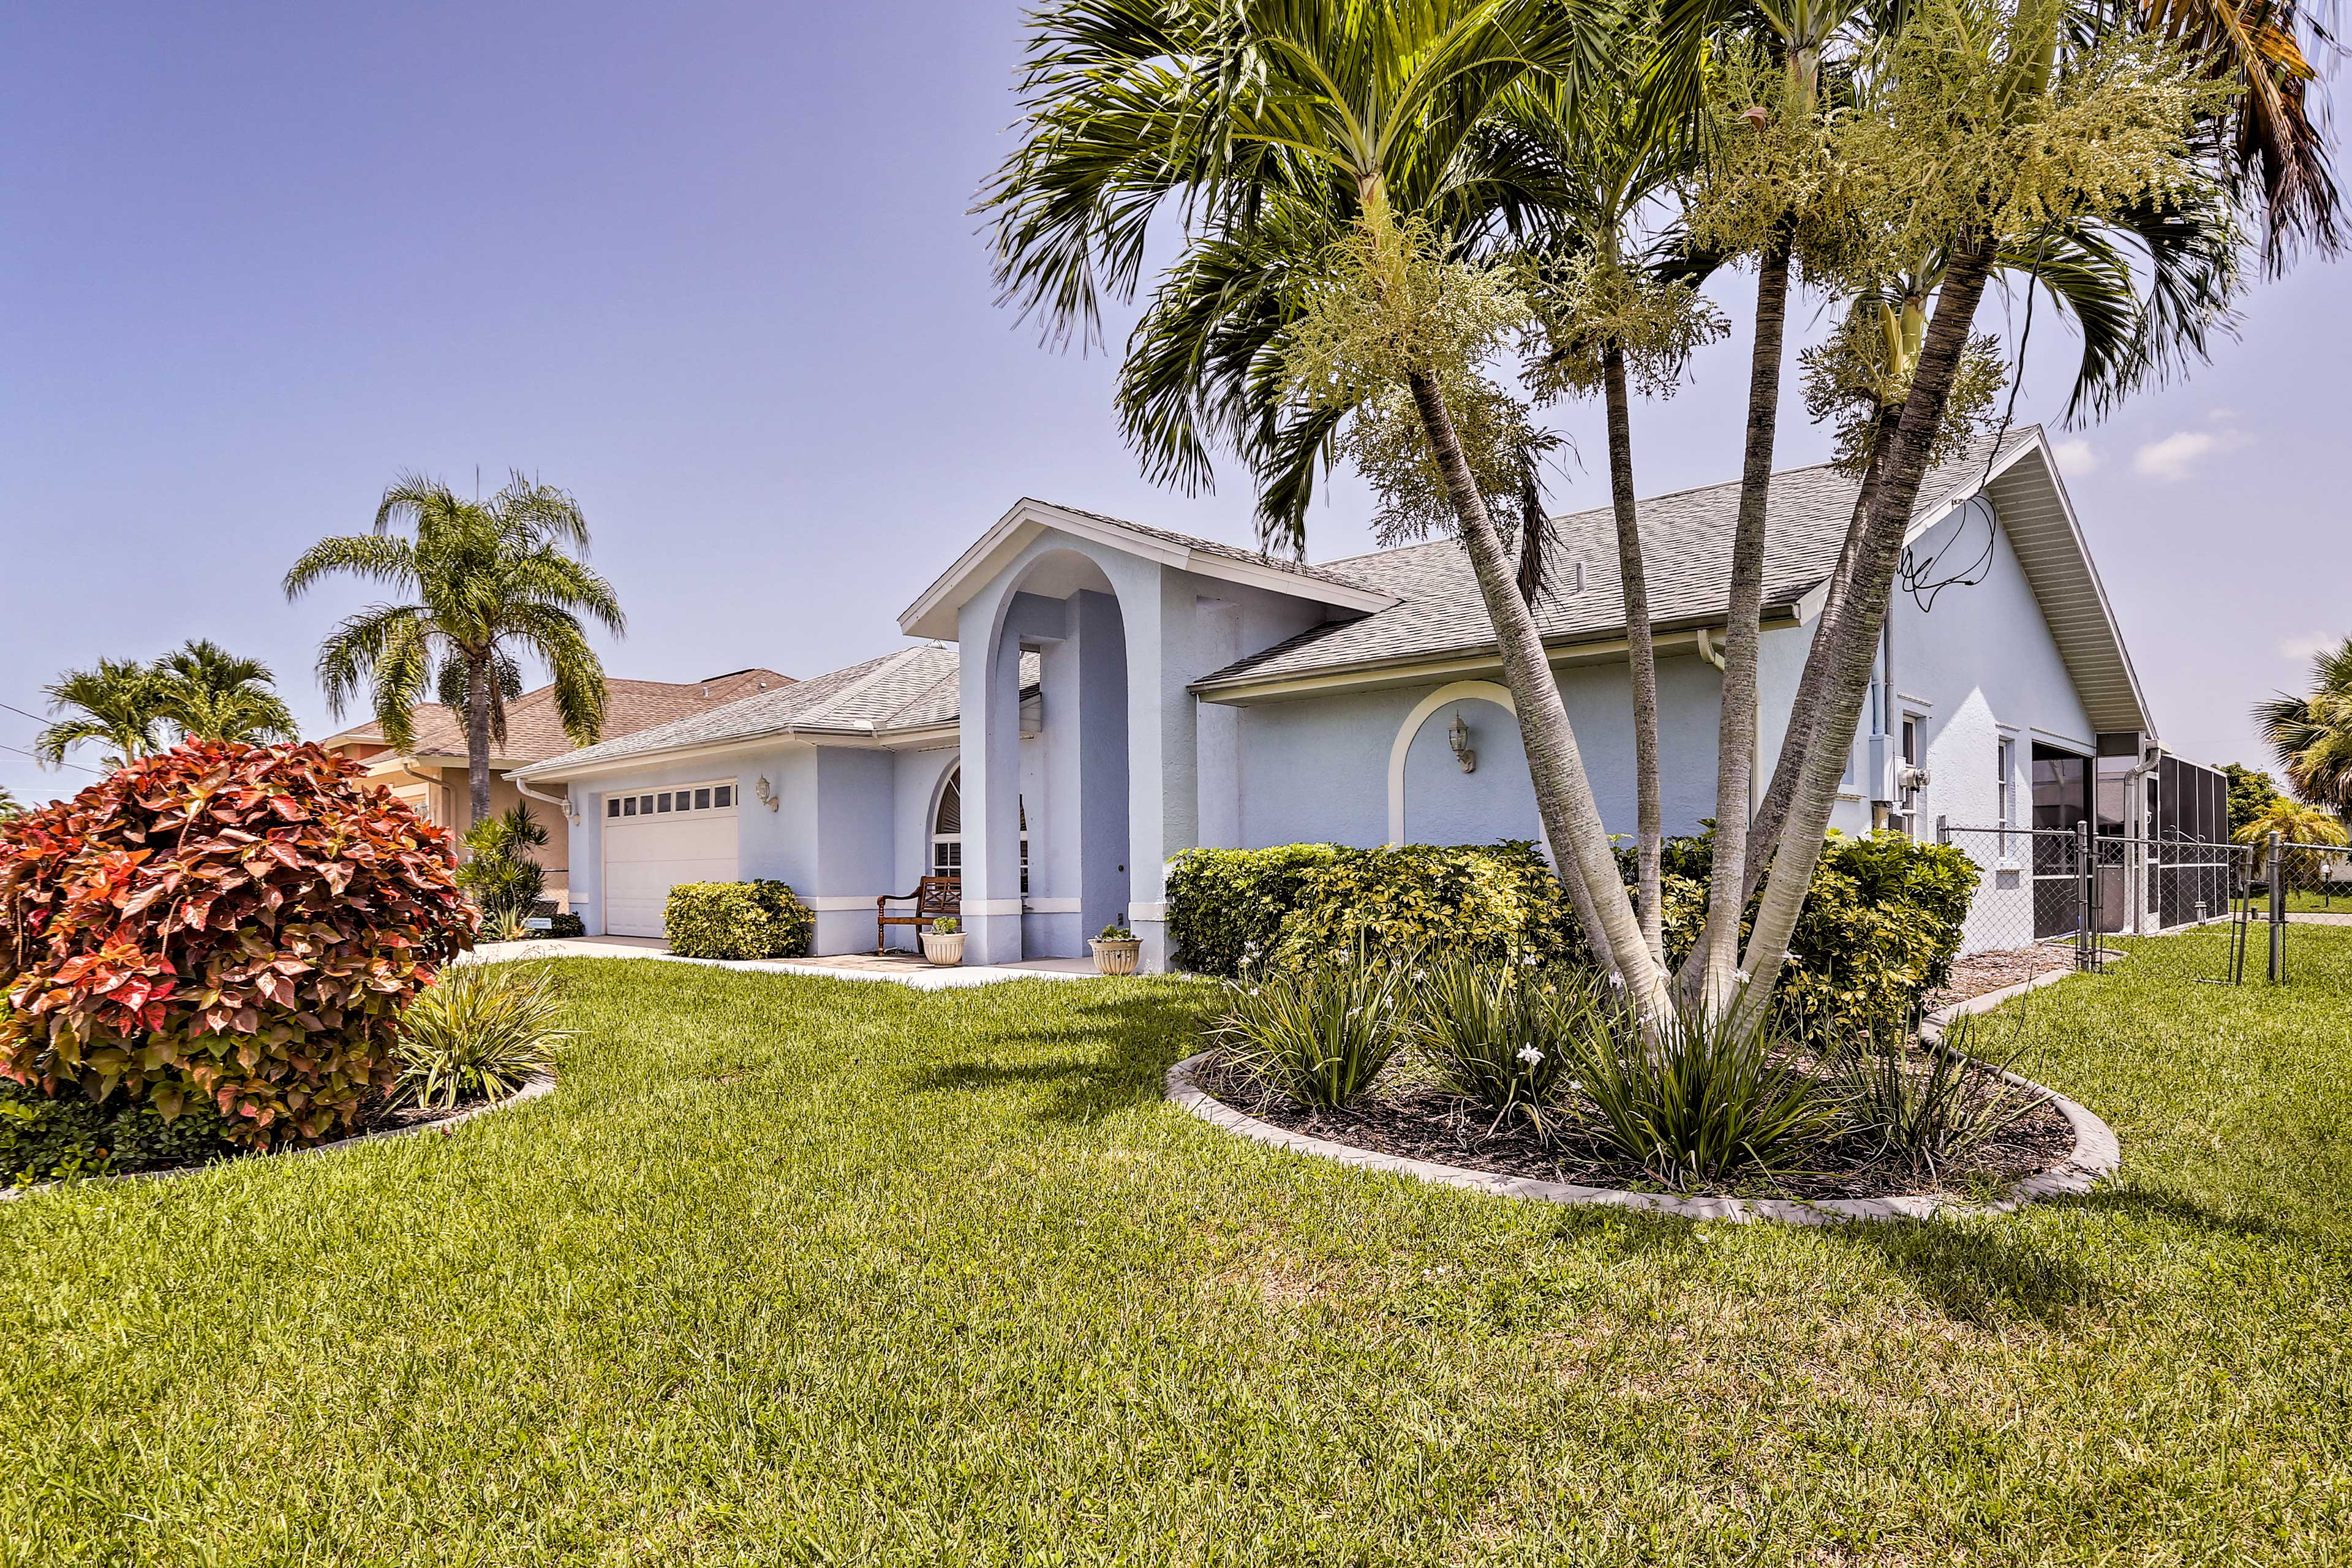 This modern Florida home sleeps 8 with 3 bedrooms and 2 bathrooms.